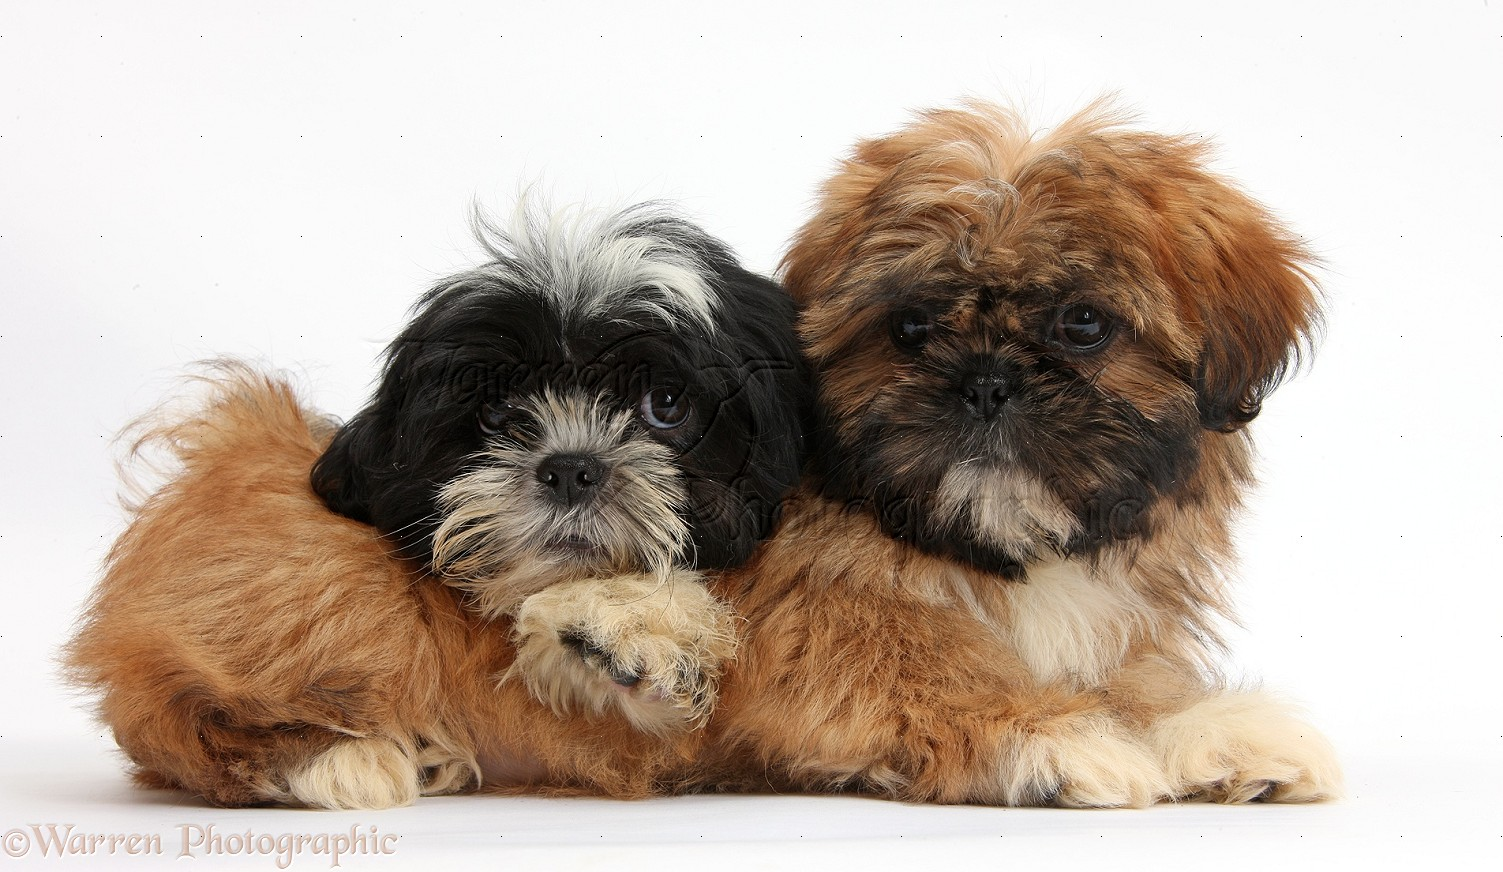 Dogs Brown And Black And White Shih Tzu Puppies Photo Wp38315